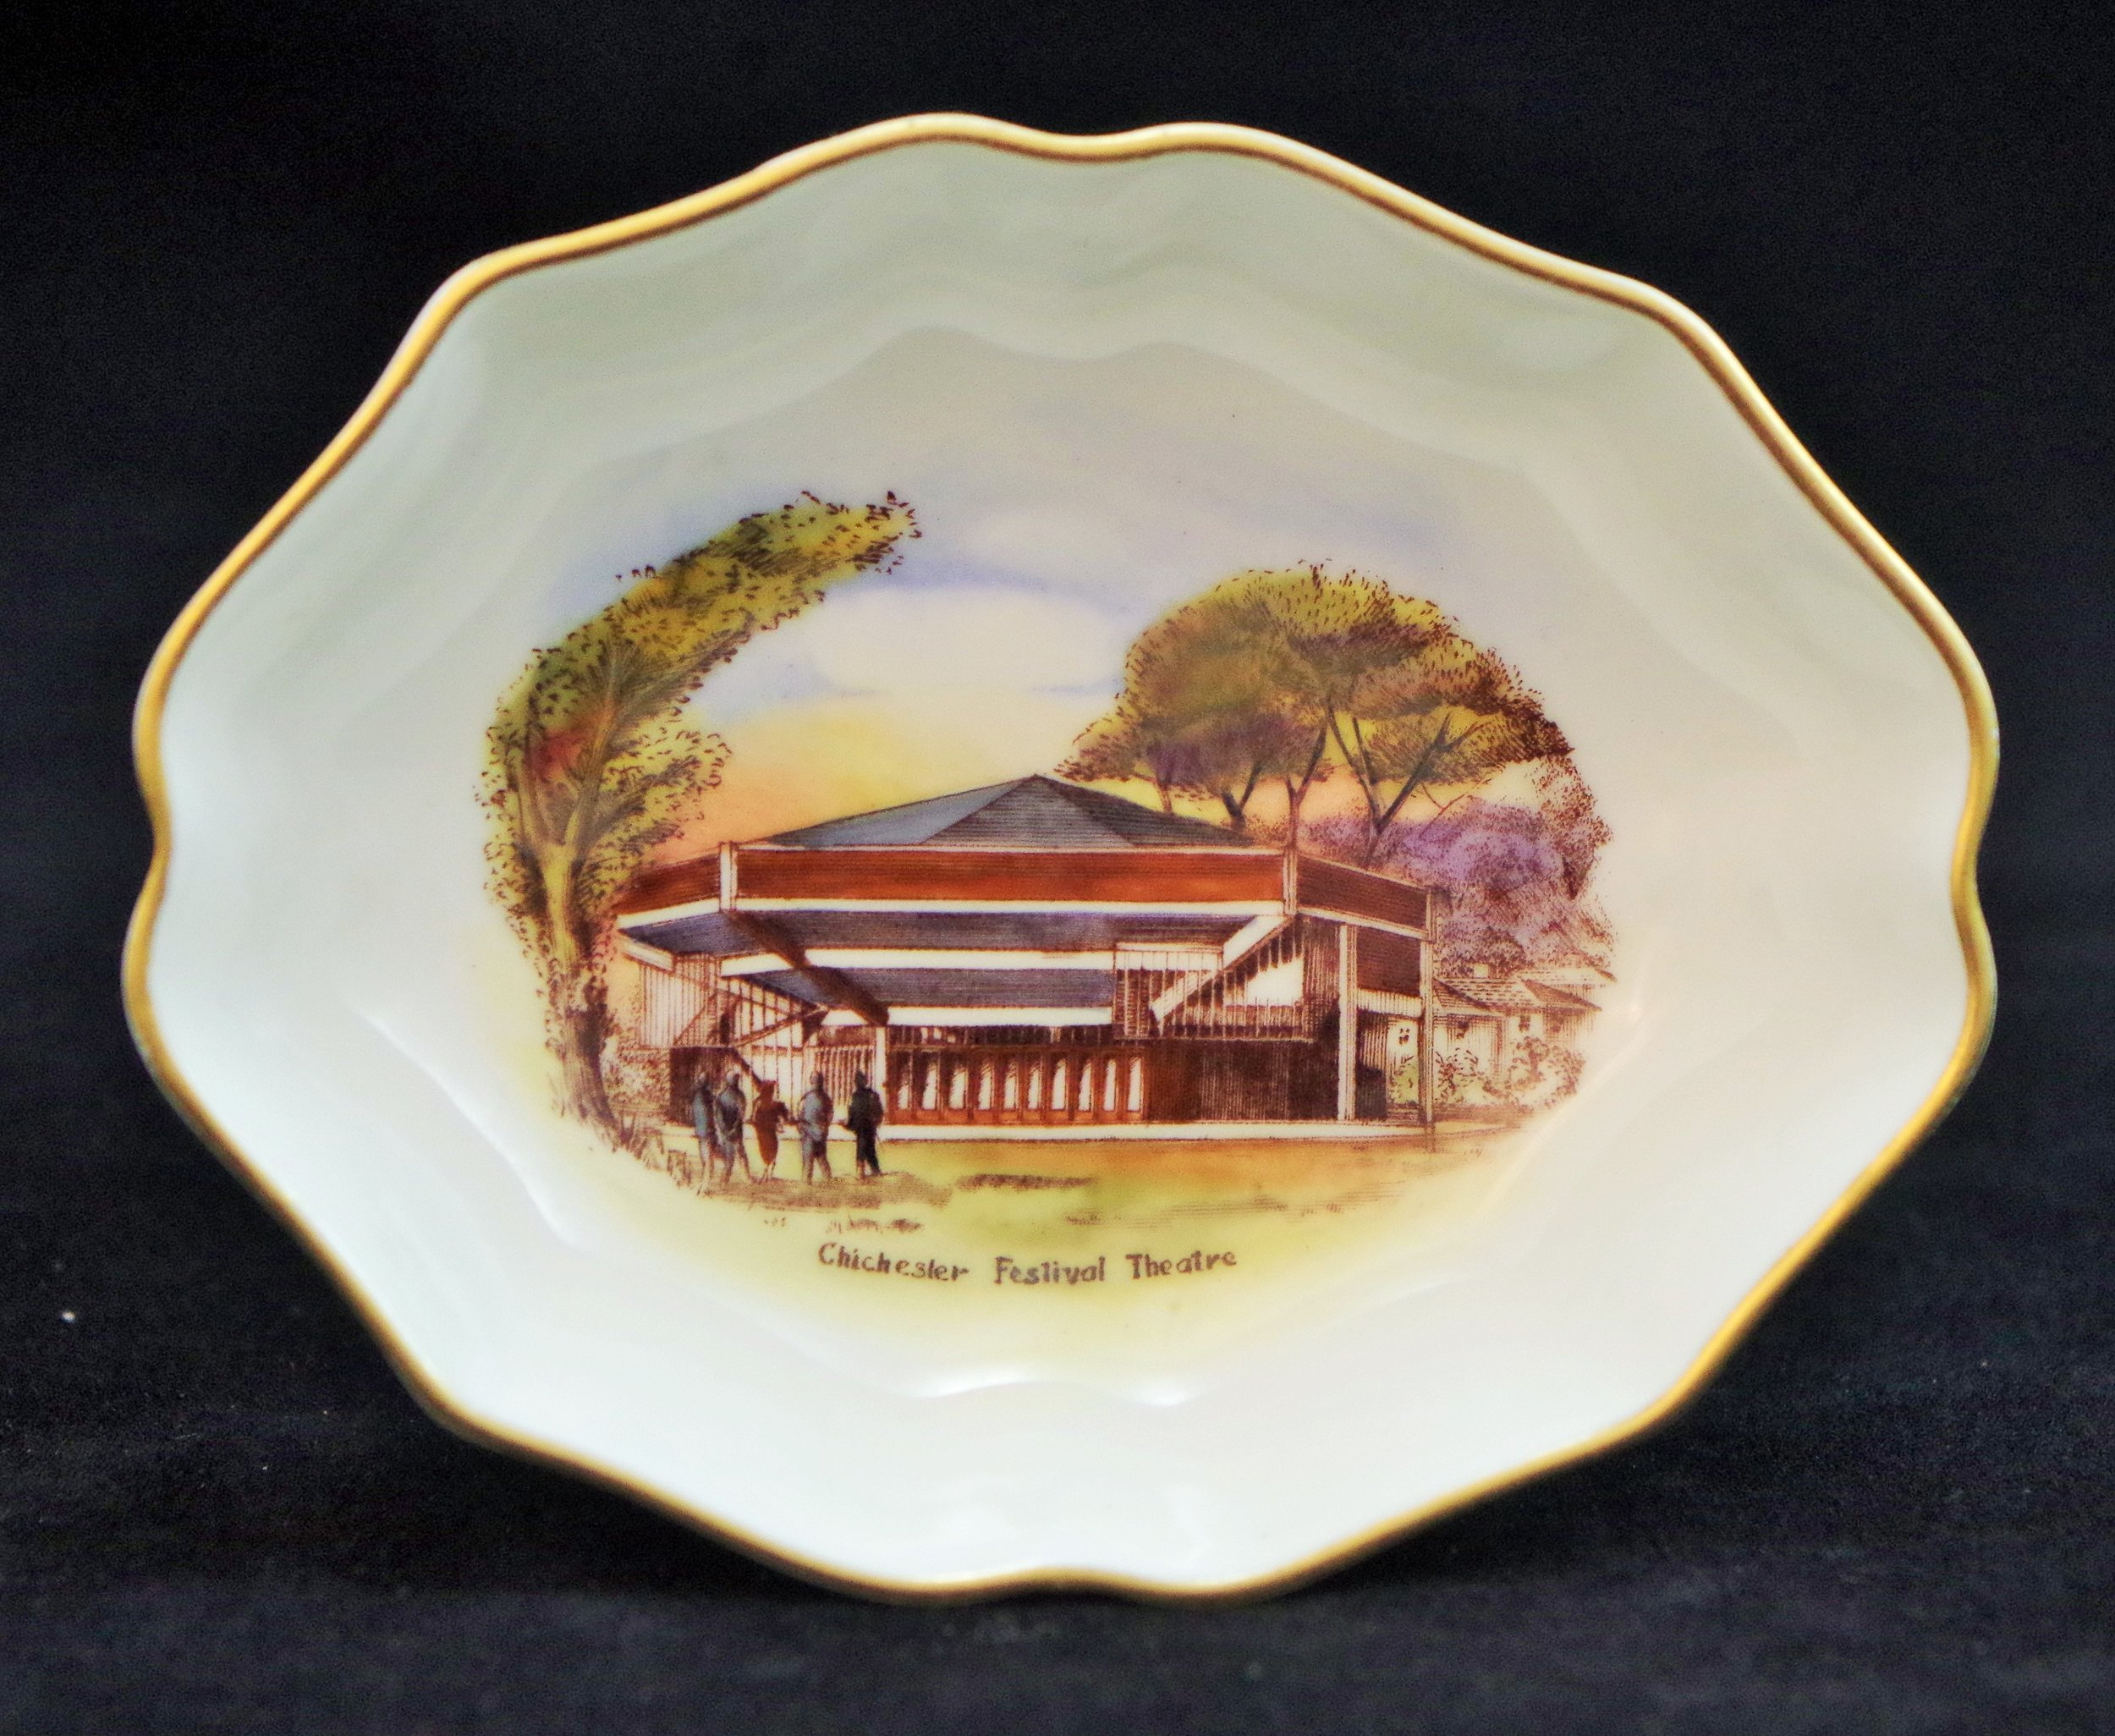 royal-crown-derby-1802-shape-oval-tray-chichester-festival-theatre